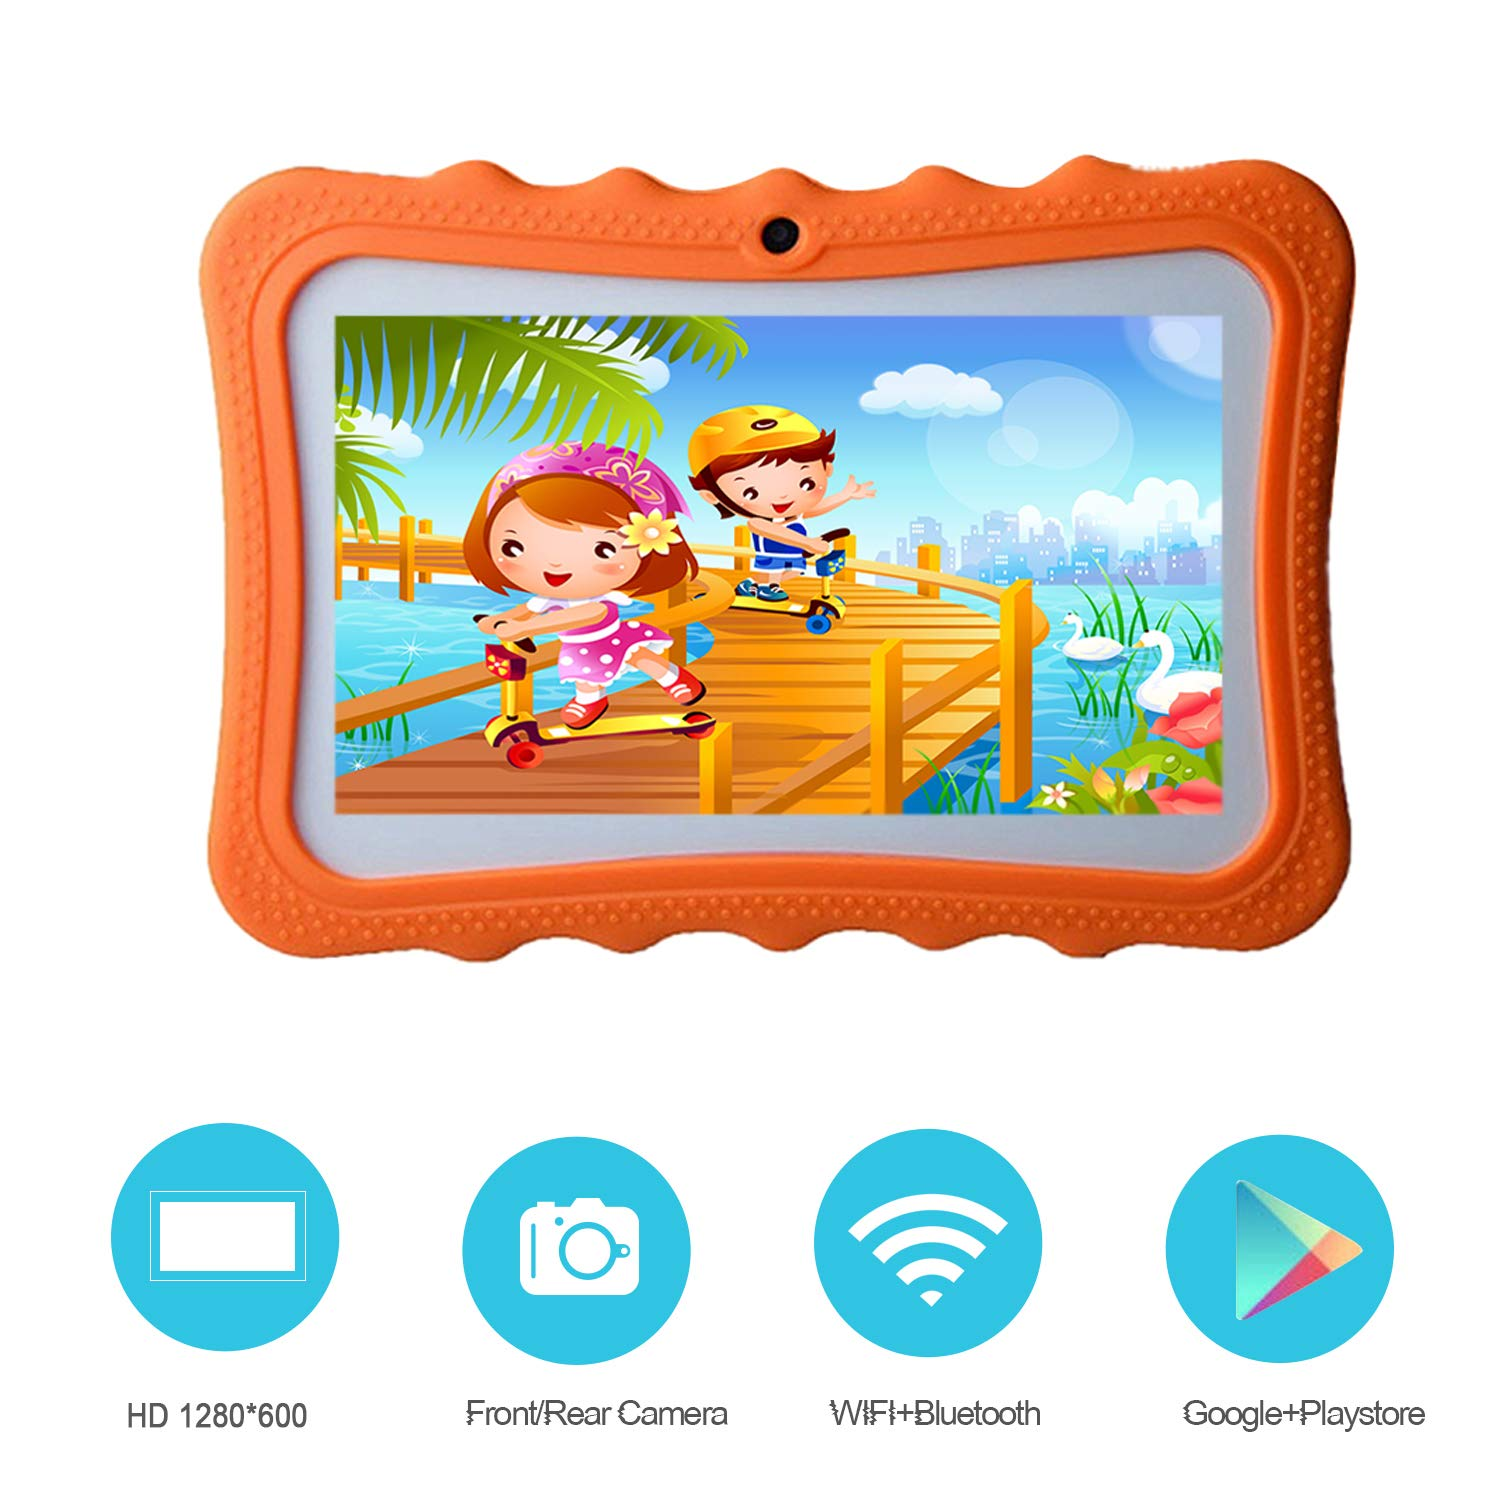 7 Pulgadas Tablet para Niños Android 8.1- Quad Core 1GB RAM 16GB ROM WiFi Bluetooth HD 1024x600 - Google Play Youtube y Control Parental Preinstalado ...